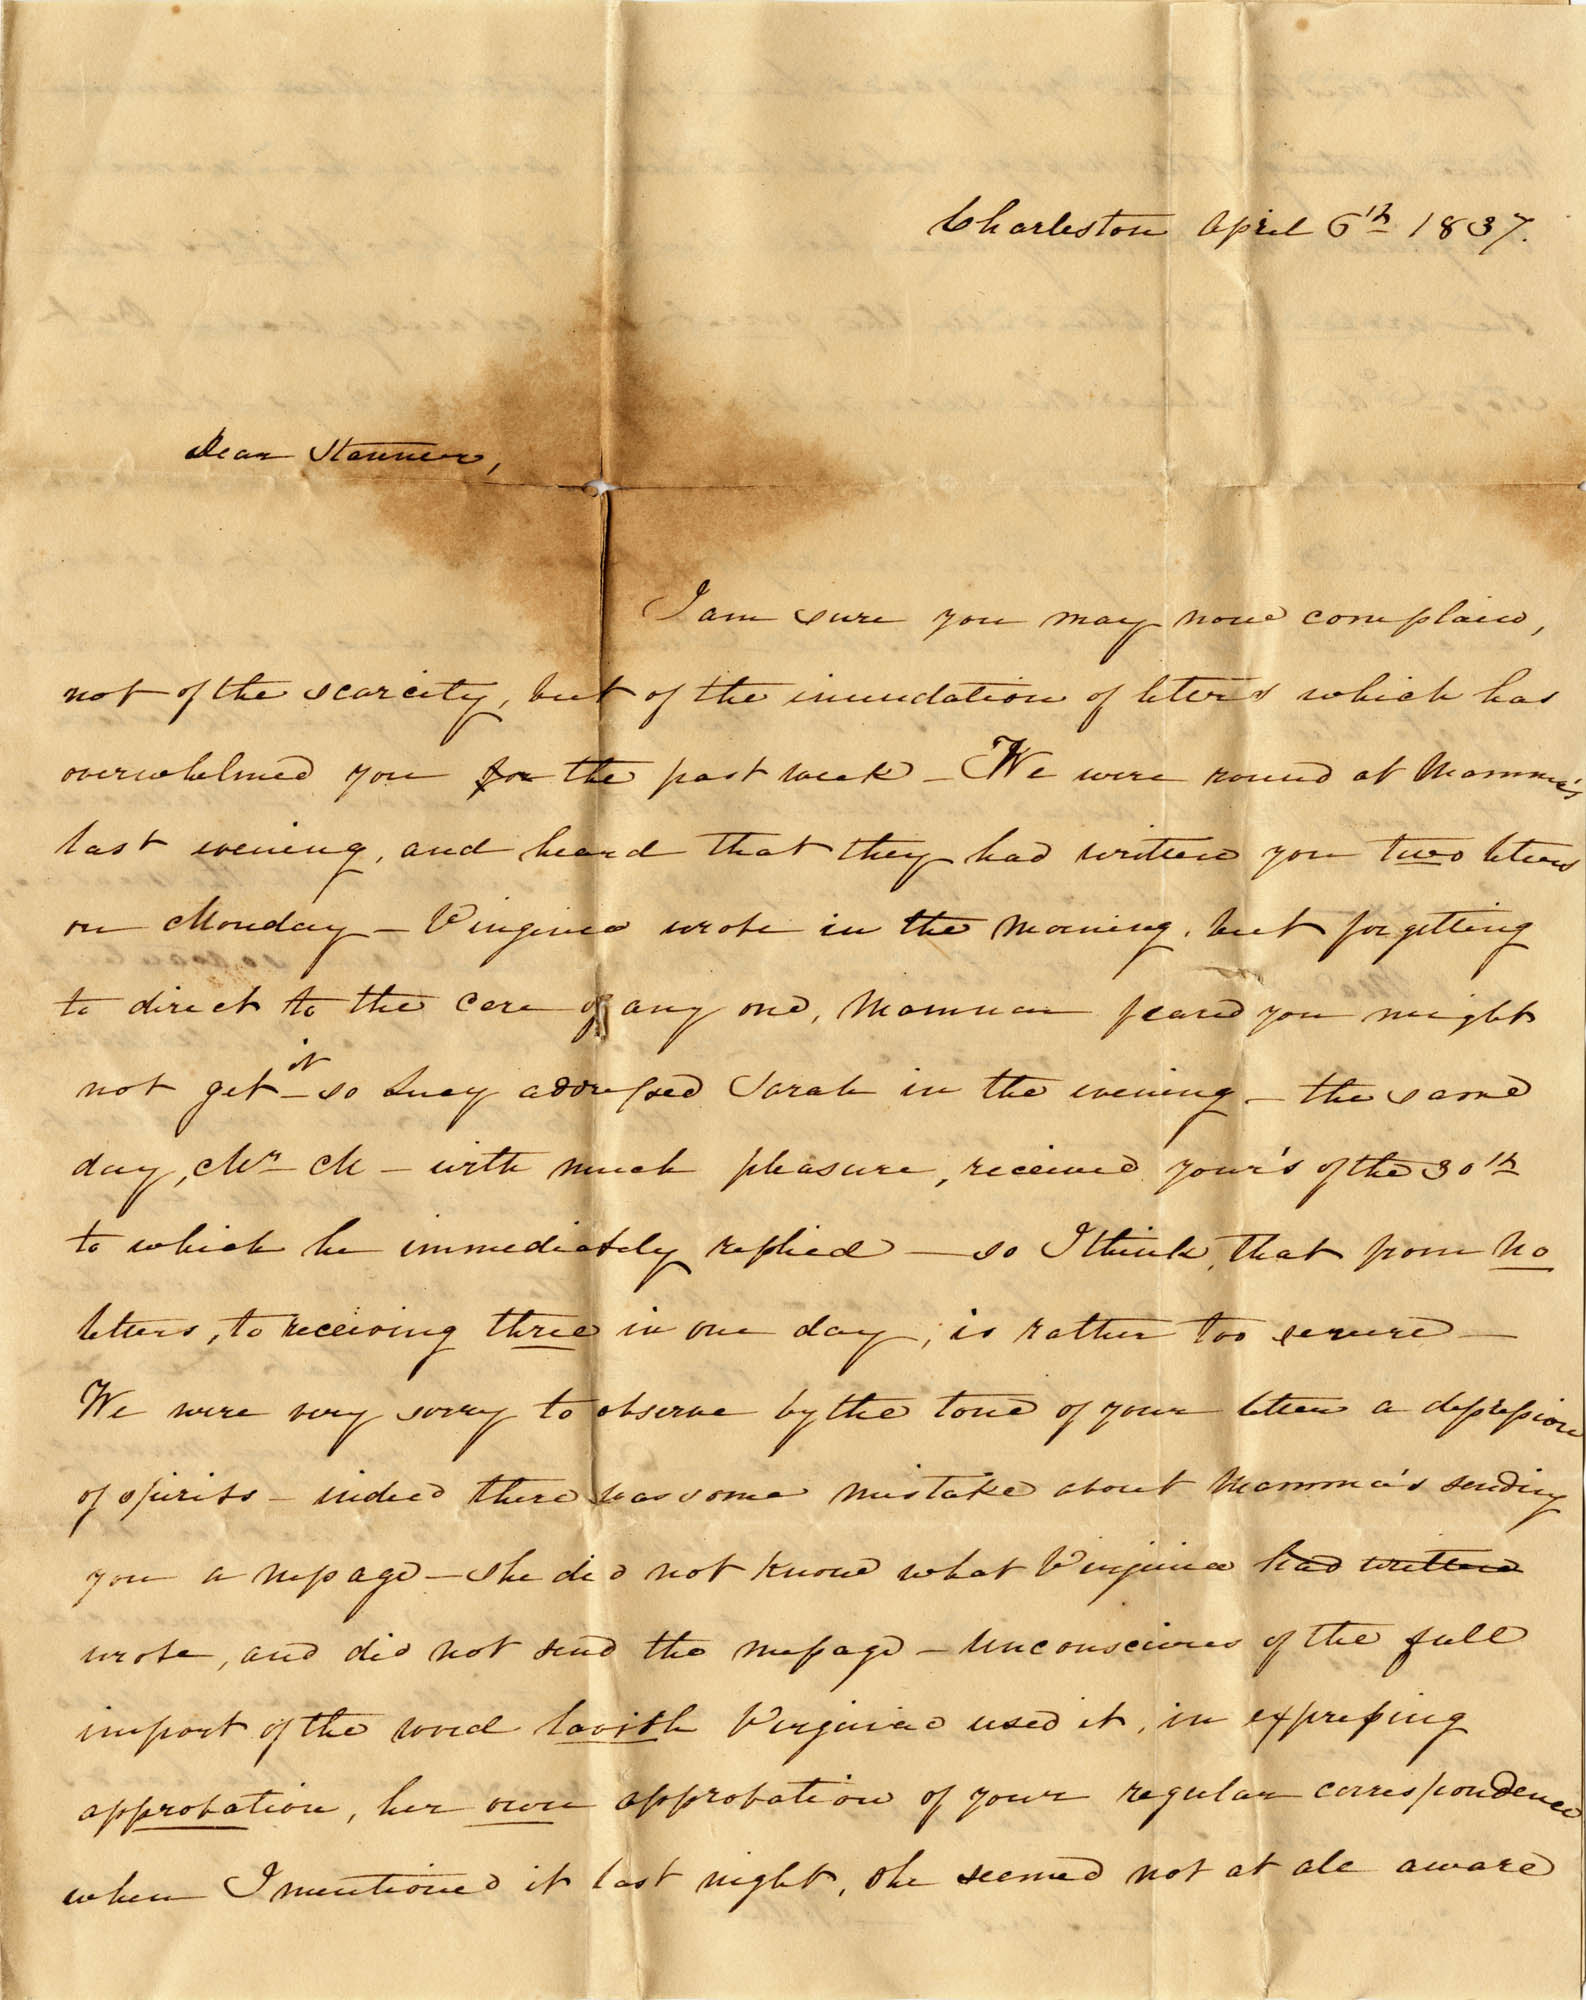 019. Mary Wilkinson Memminger to Anna Wilkinson -- April 6, 1837